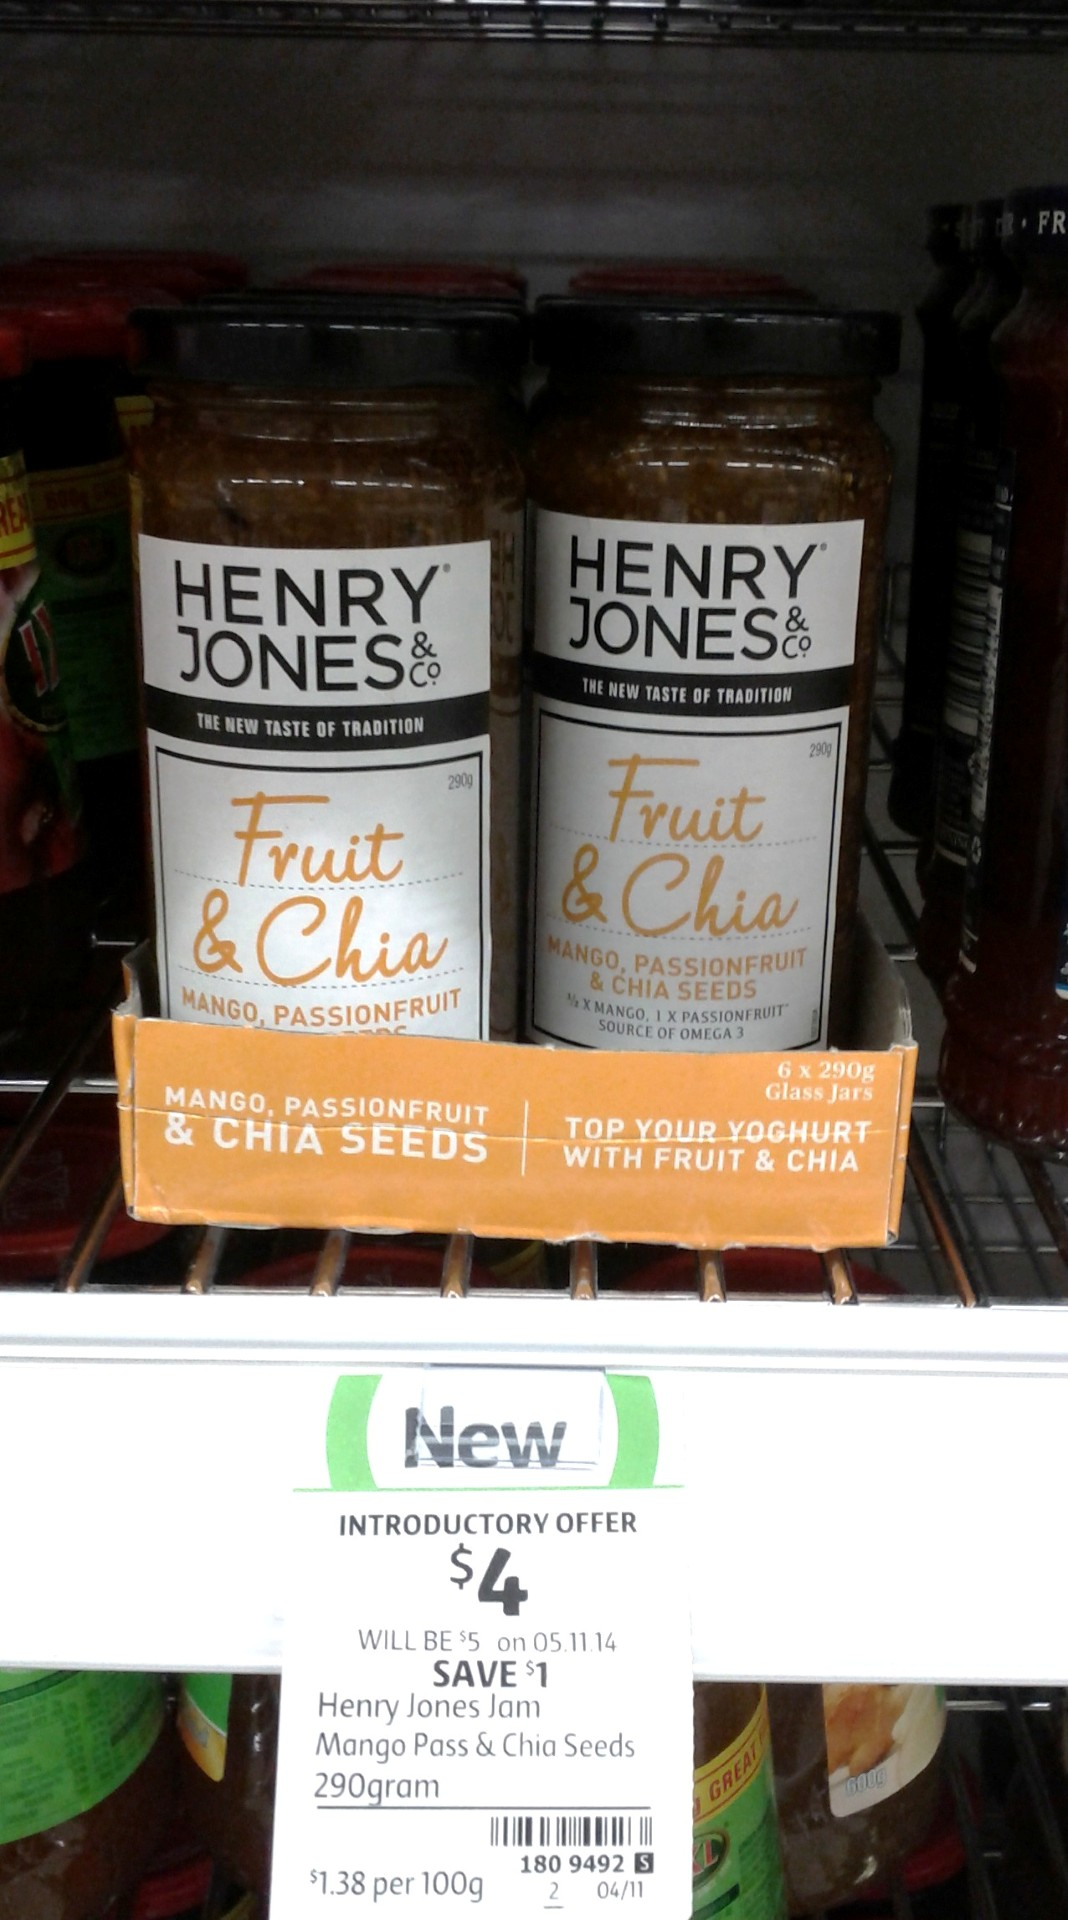 Henry Jones 290g Mango Passionfruit & Chia Seeds Jam